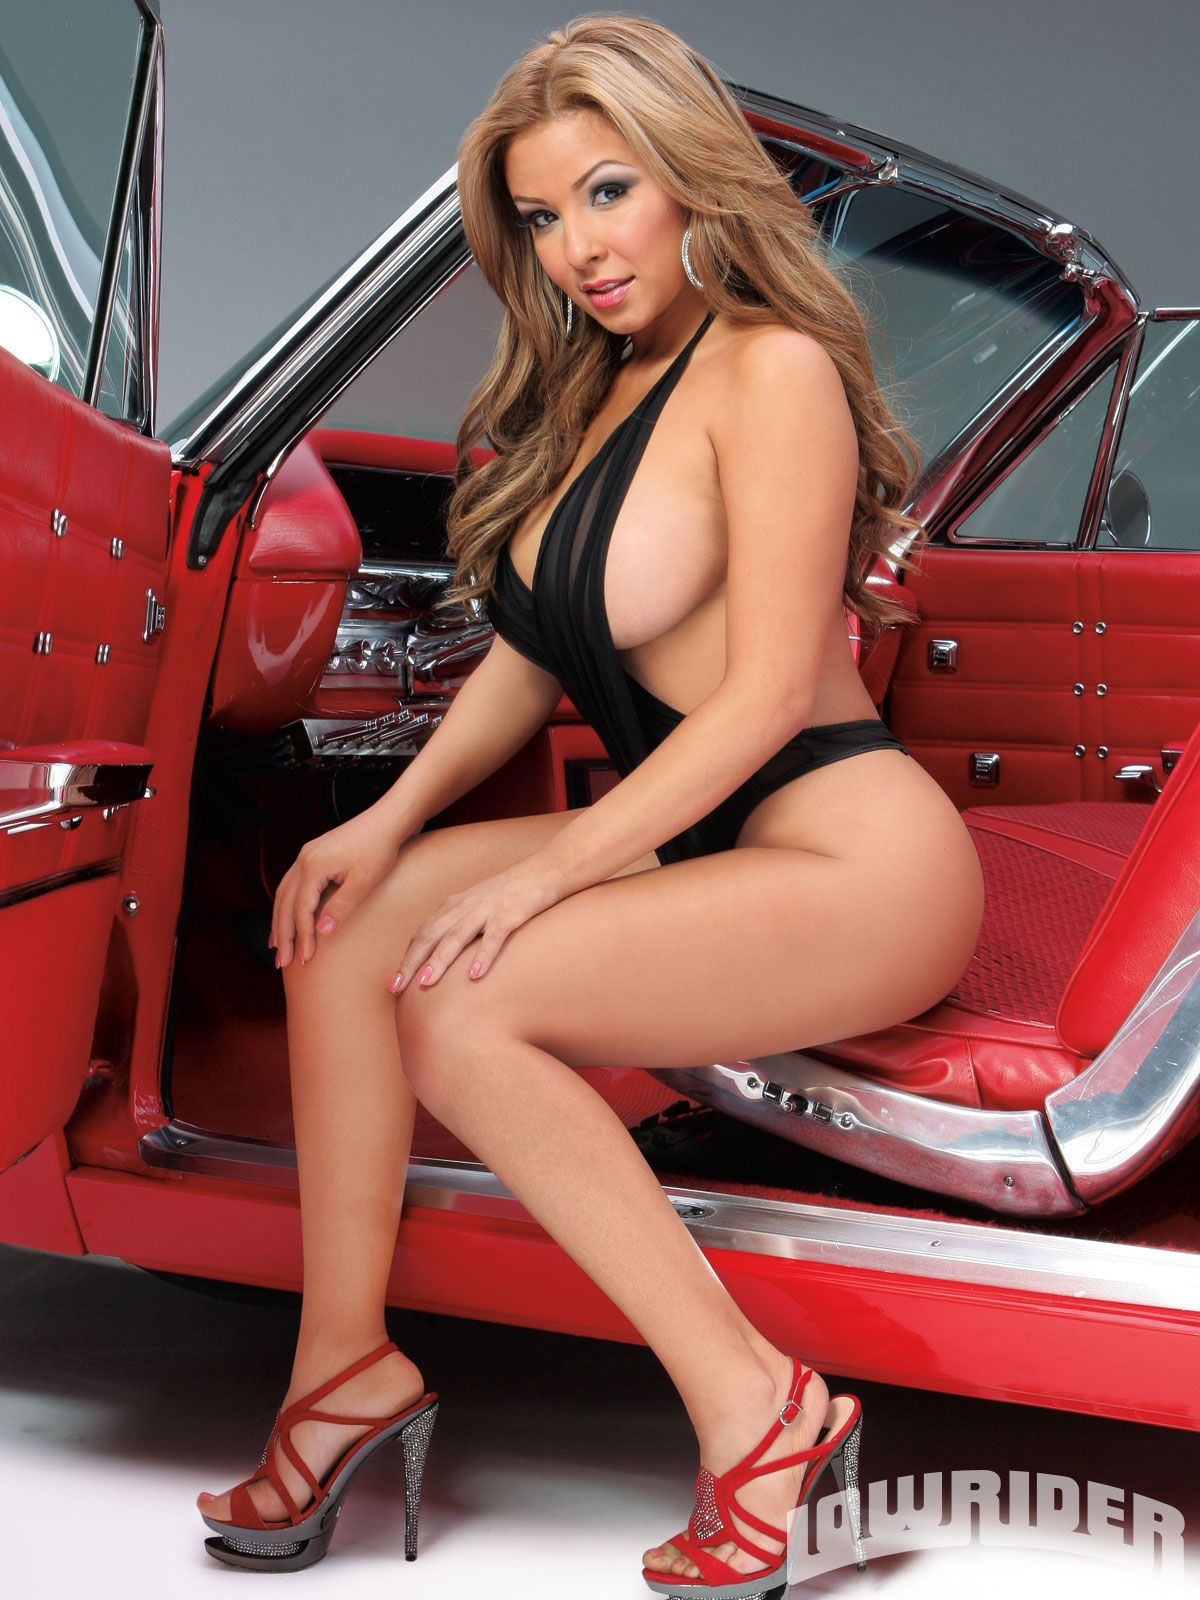 Nude lowrider model pics possible